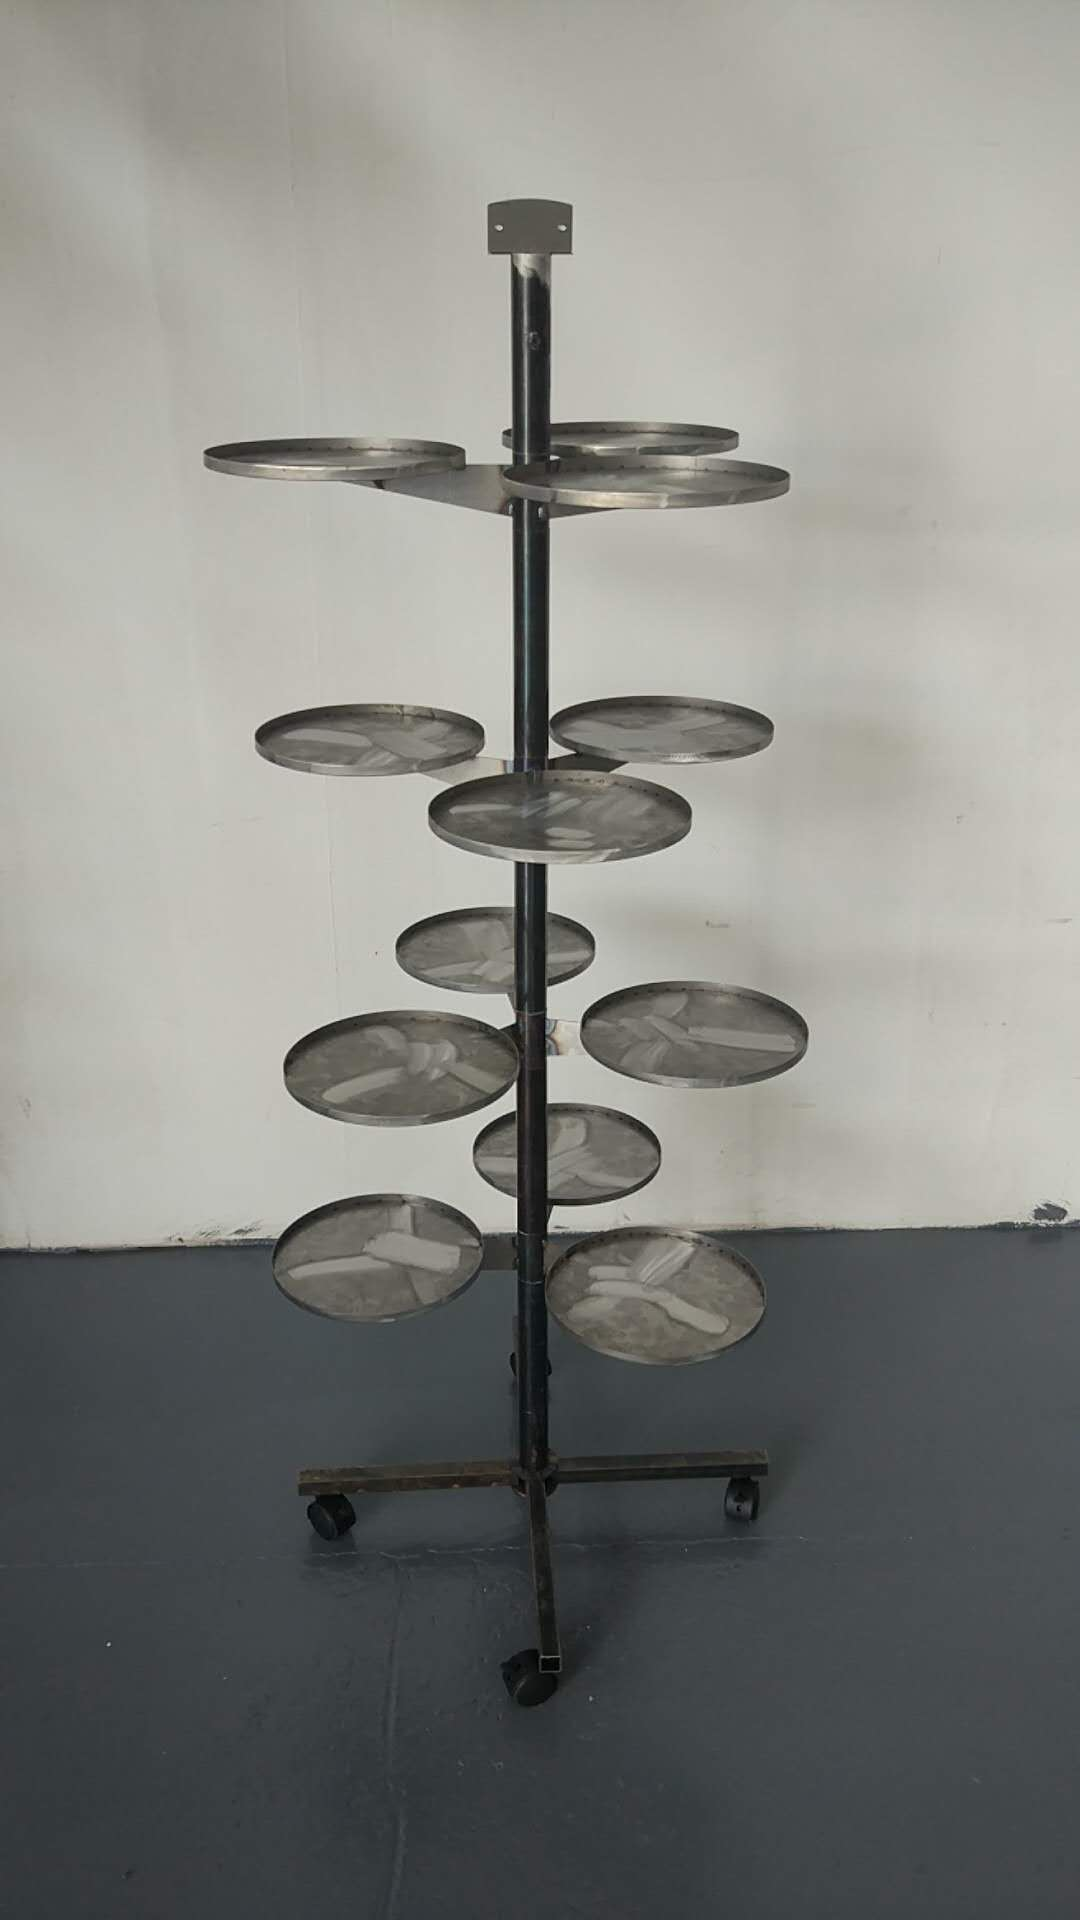 YISHANG -Find China Suppliers Wholesale Floor Cosmetic Display Stands-1